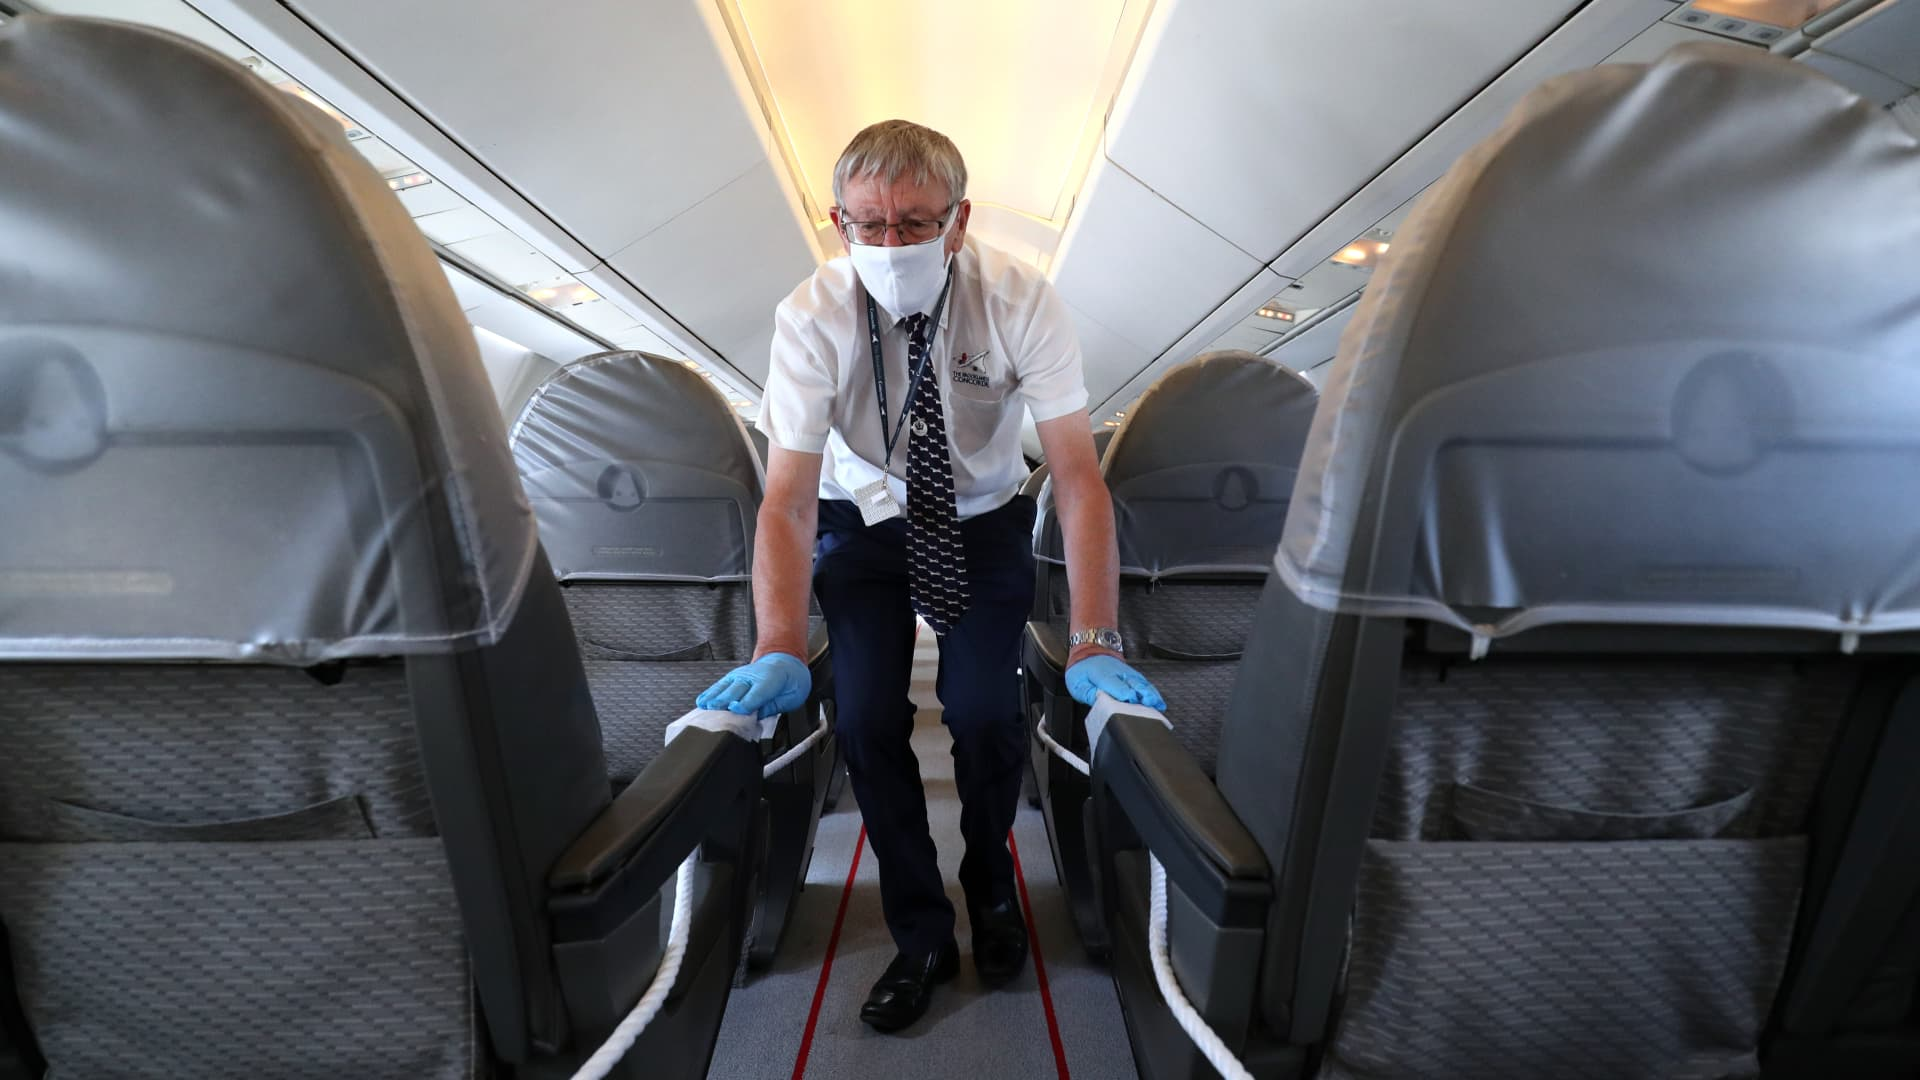 Airlines have increased visible cleaning standards on flights in a bid to reassure people who are nervous to fly during the pandemic.